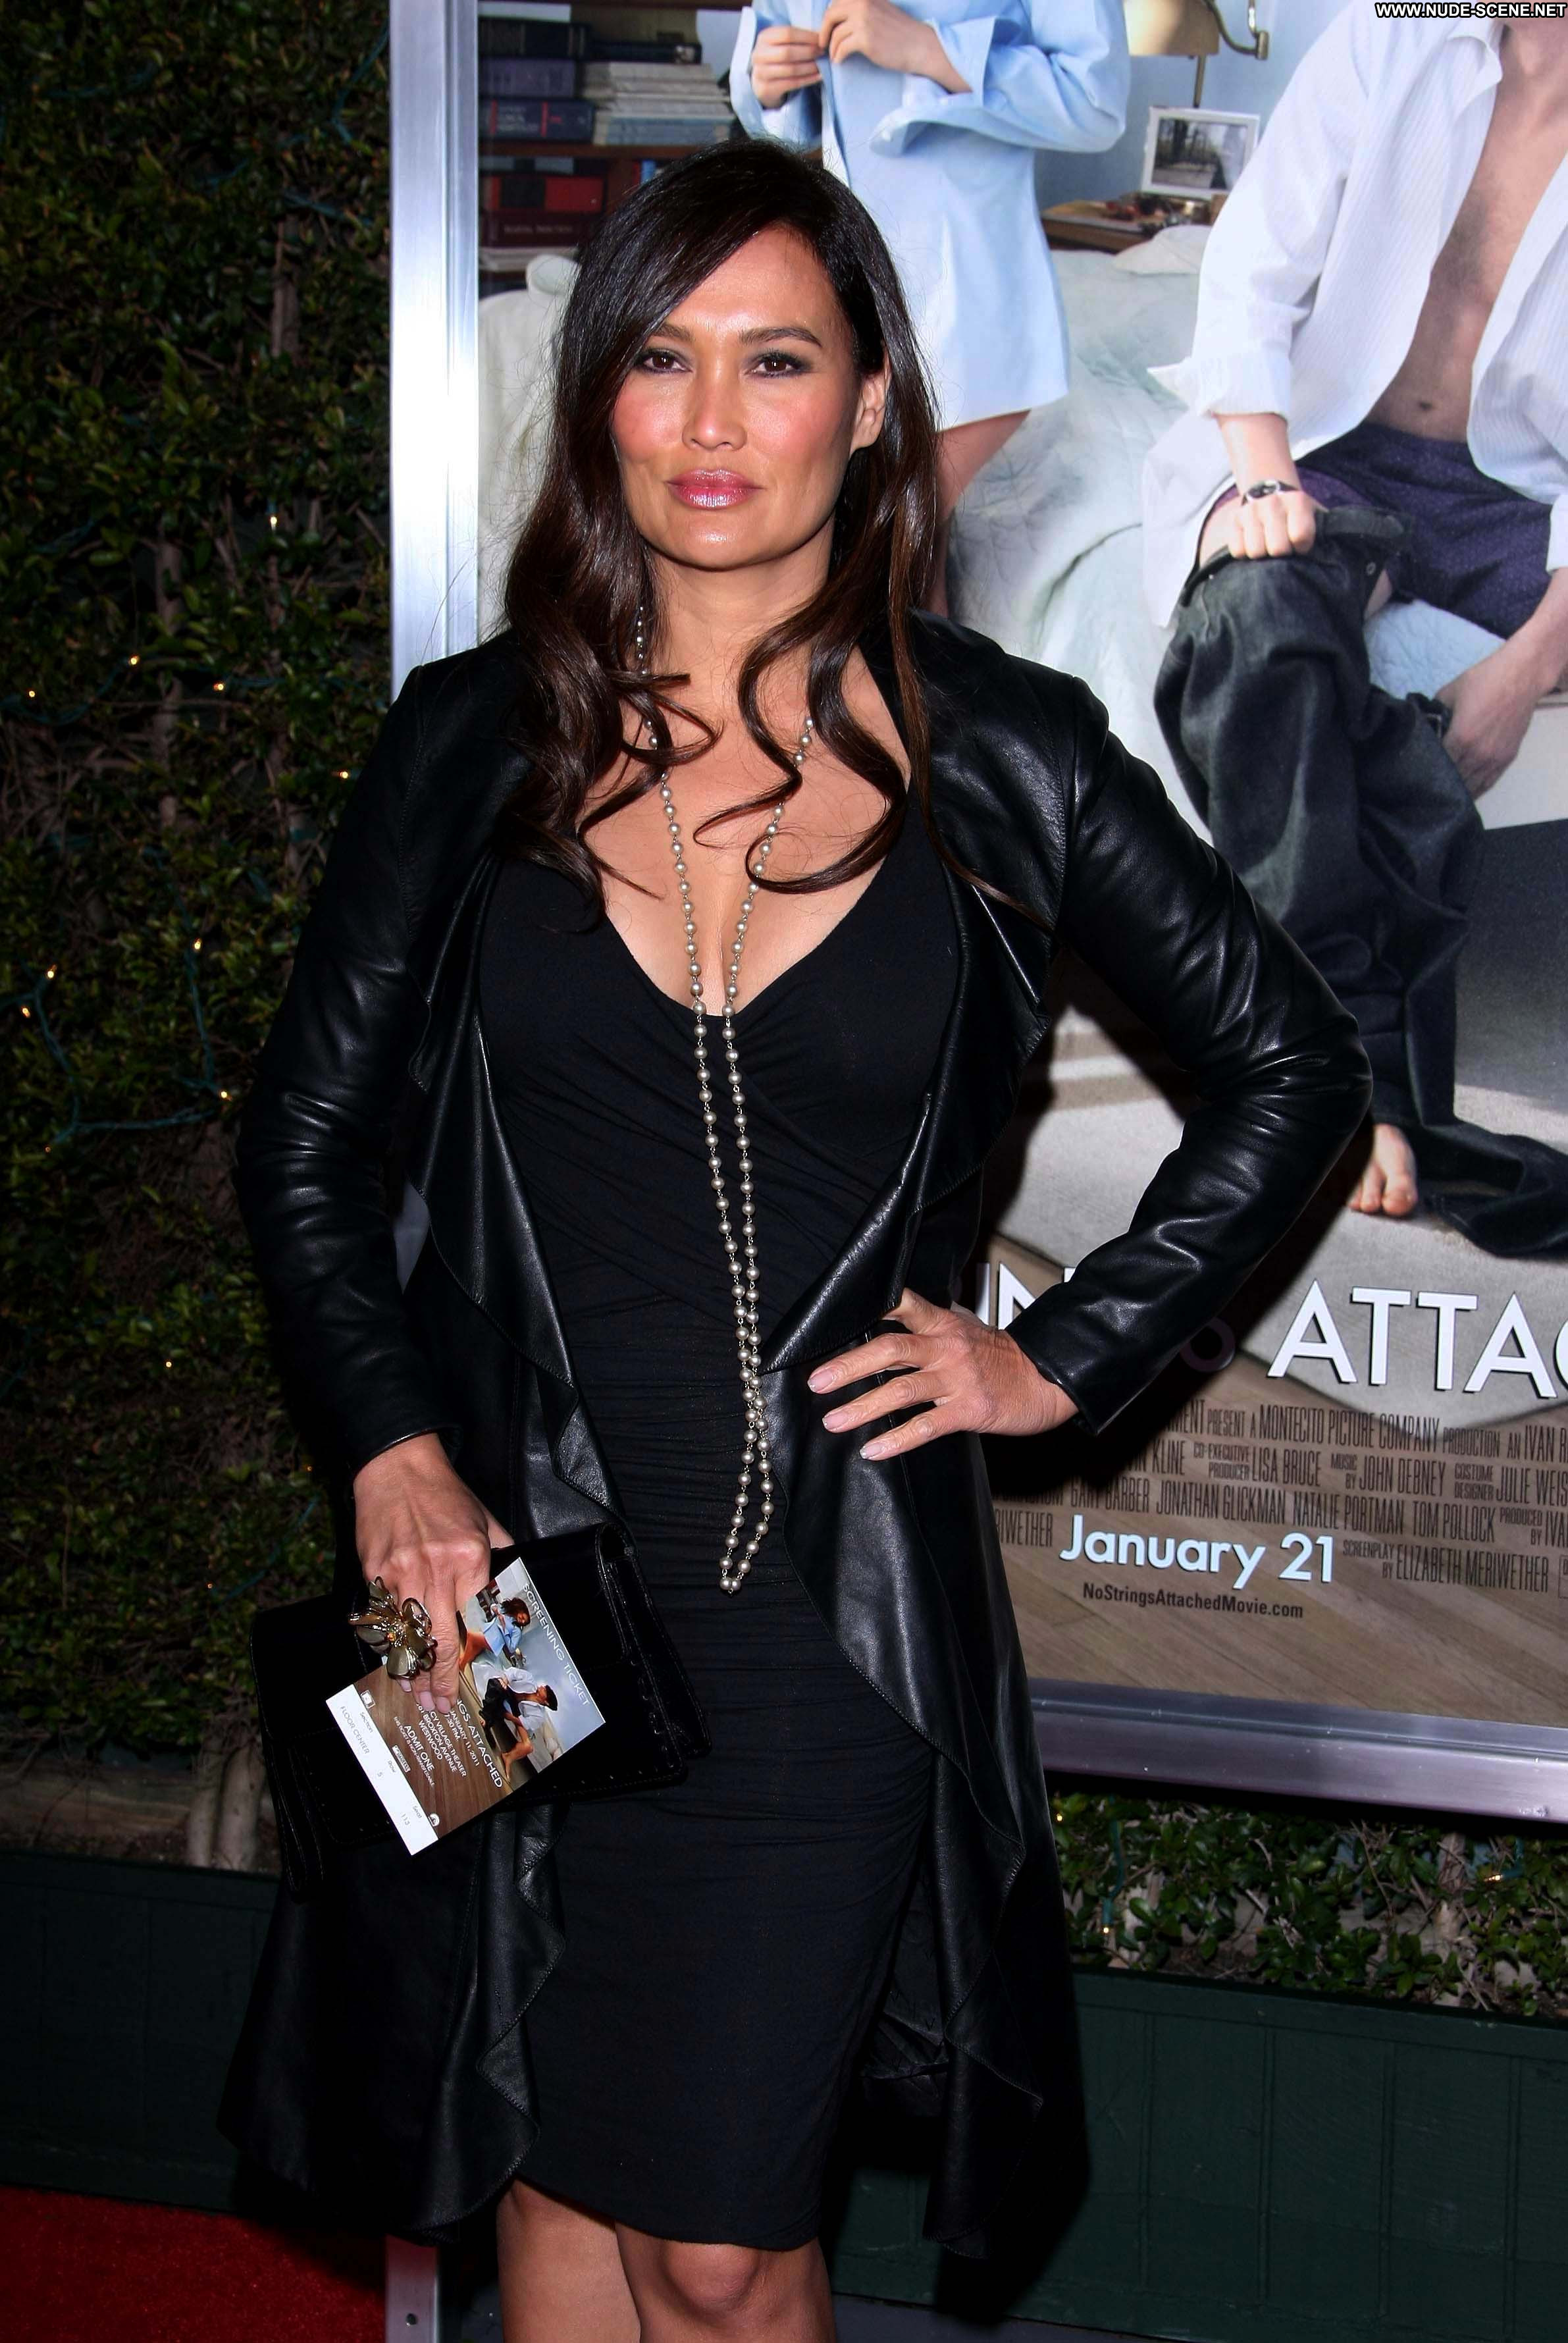 Tia Carrere No Strings Attached No Strings Attached